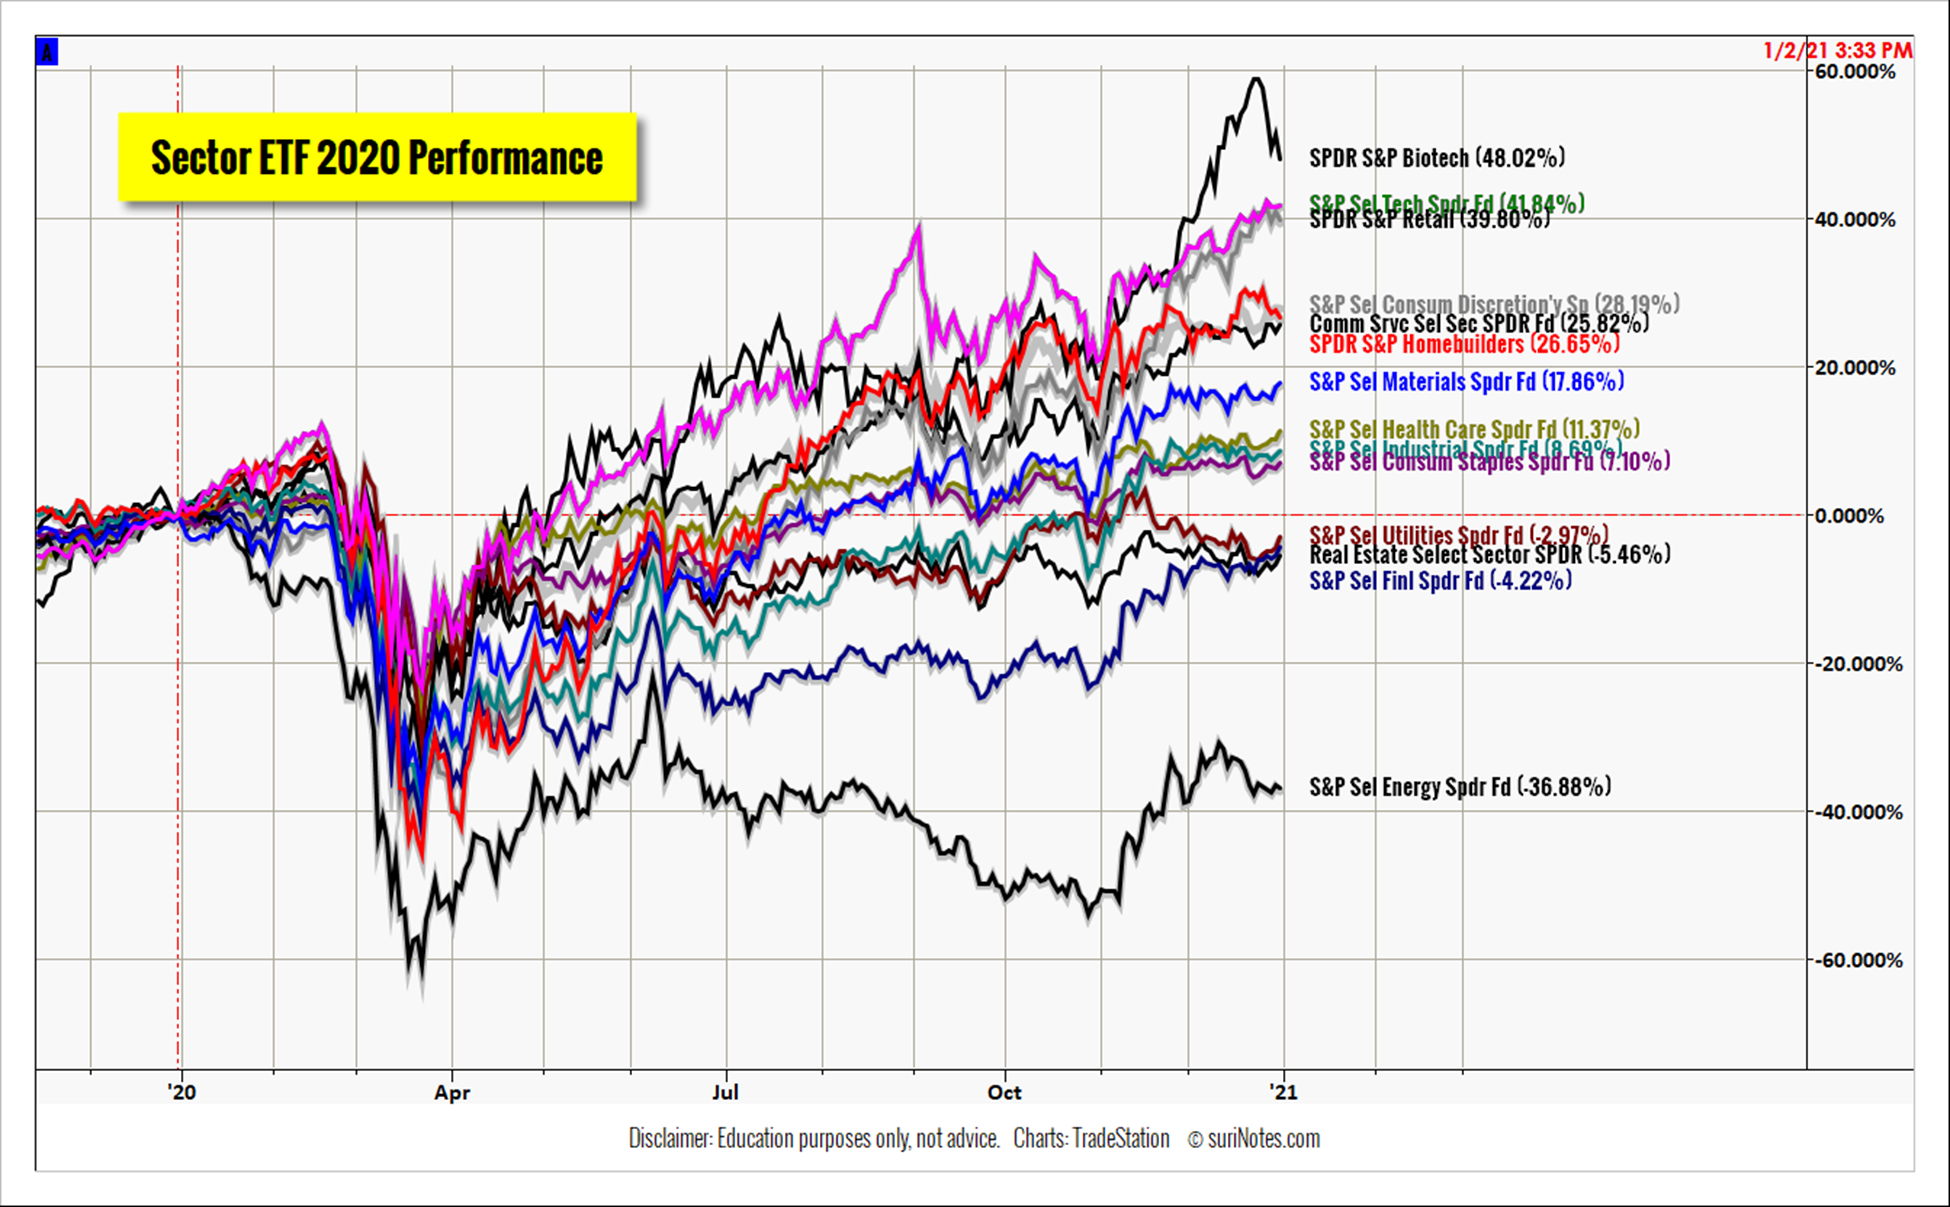 S&P Select Sector ETF 2020 Performances